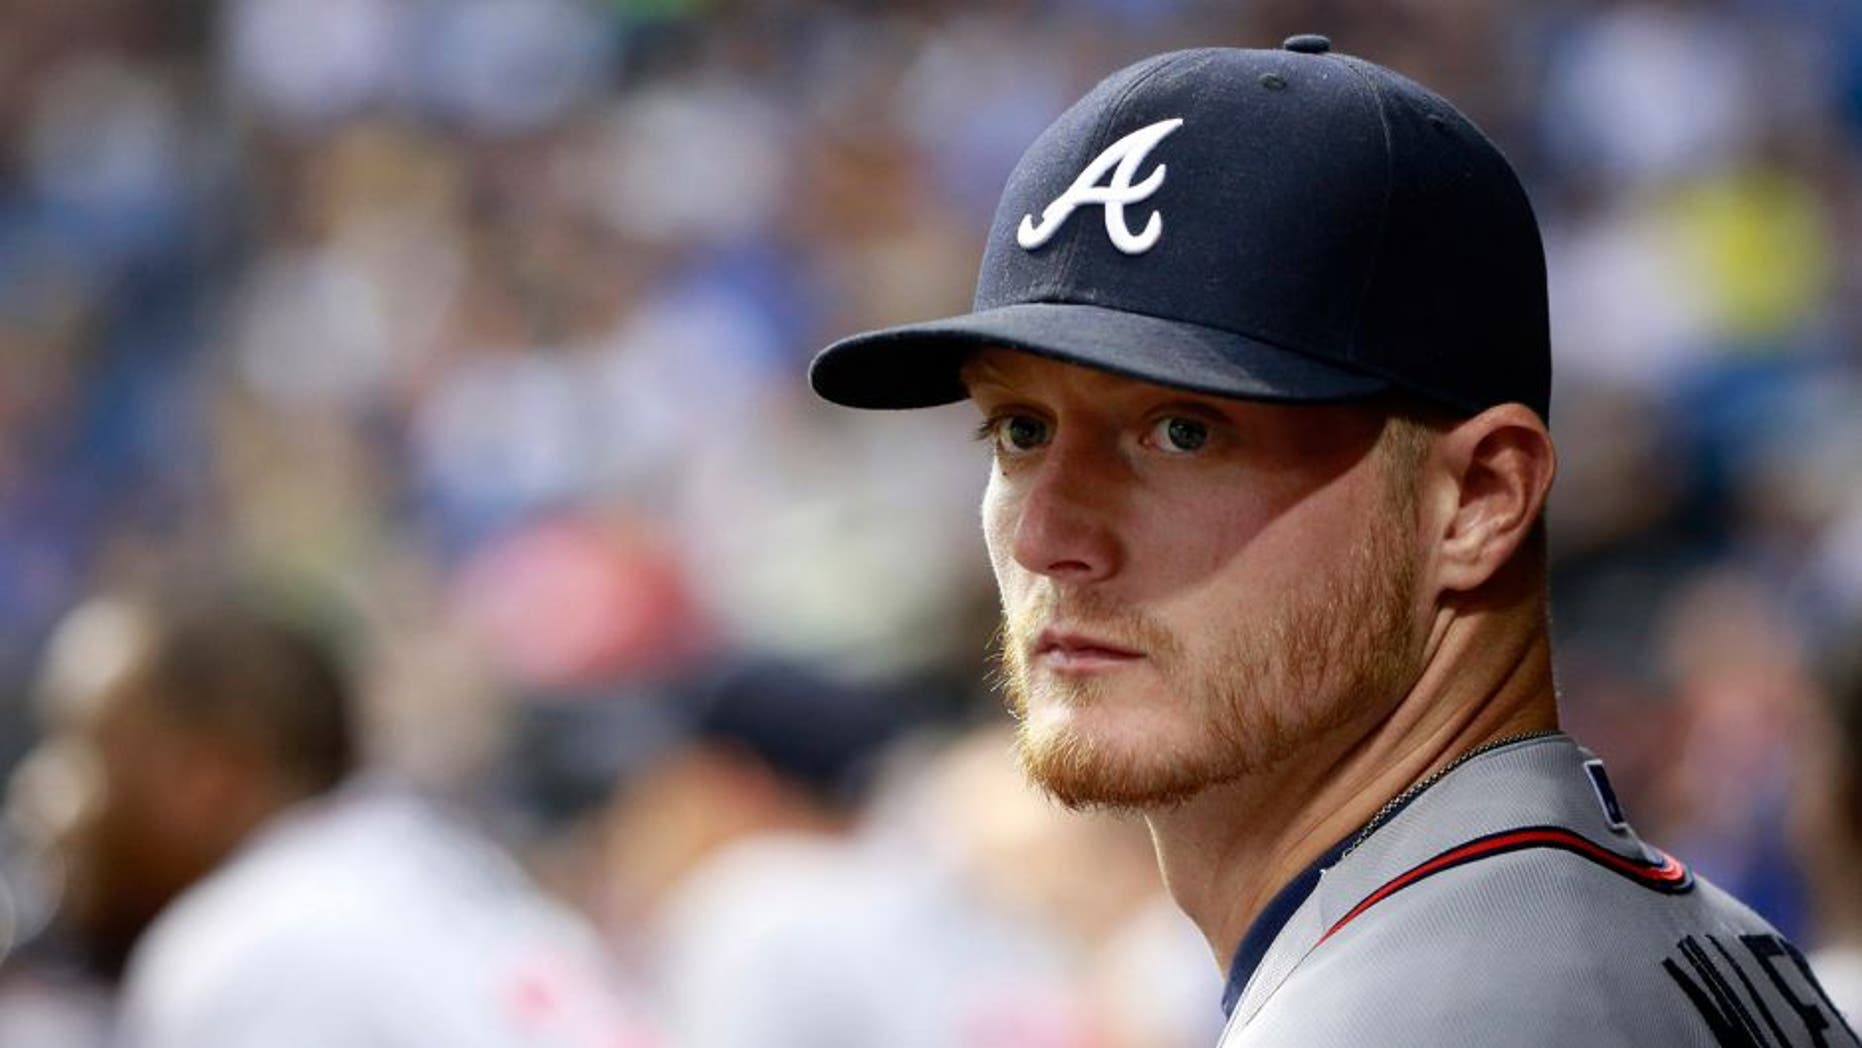 Aug 12, 2015; St. Petersburg, FL, USA; Atlanta Braves pitcher Shelby Miller (17) looks on in the dugout against the Tampa Bay Rays at Tropicana Field. Mandatory Credit: Kim Klement-USA TODAY Sports